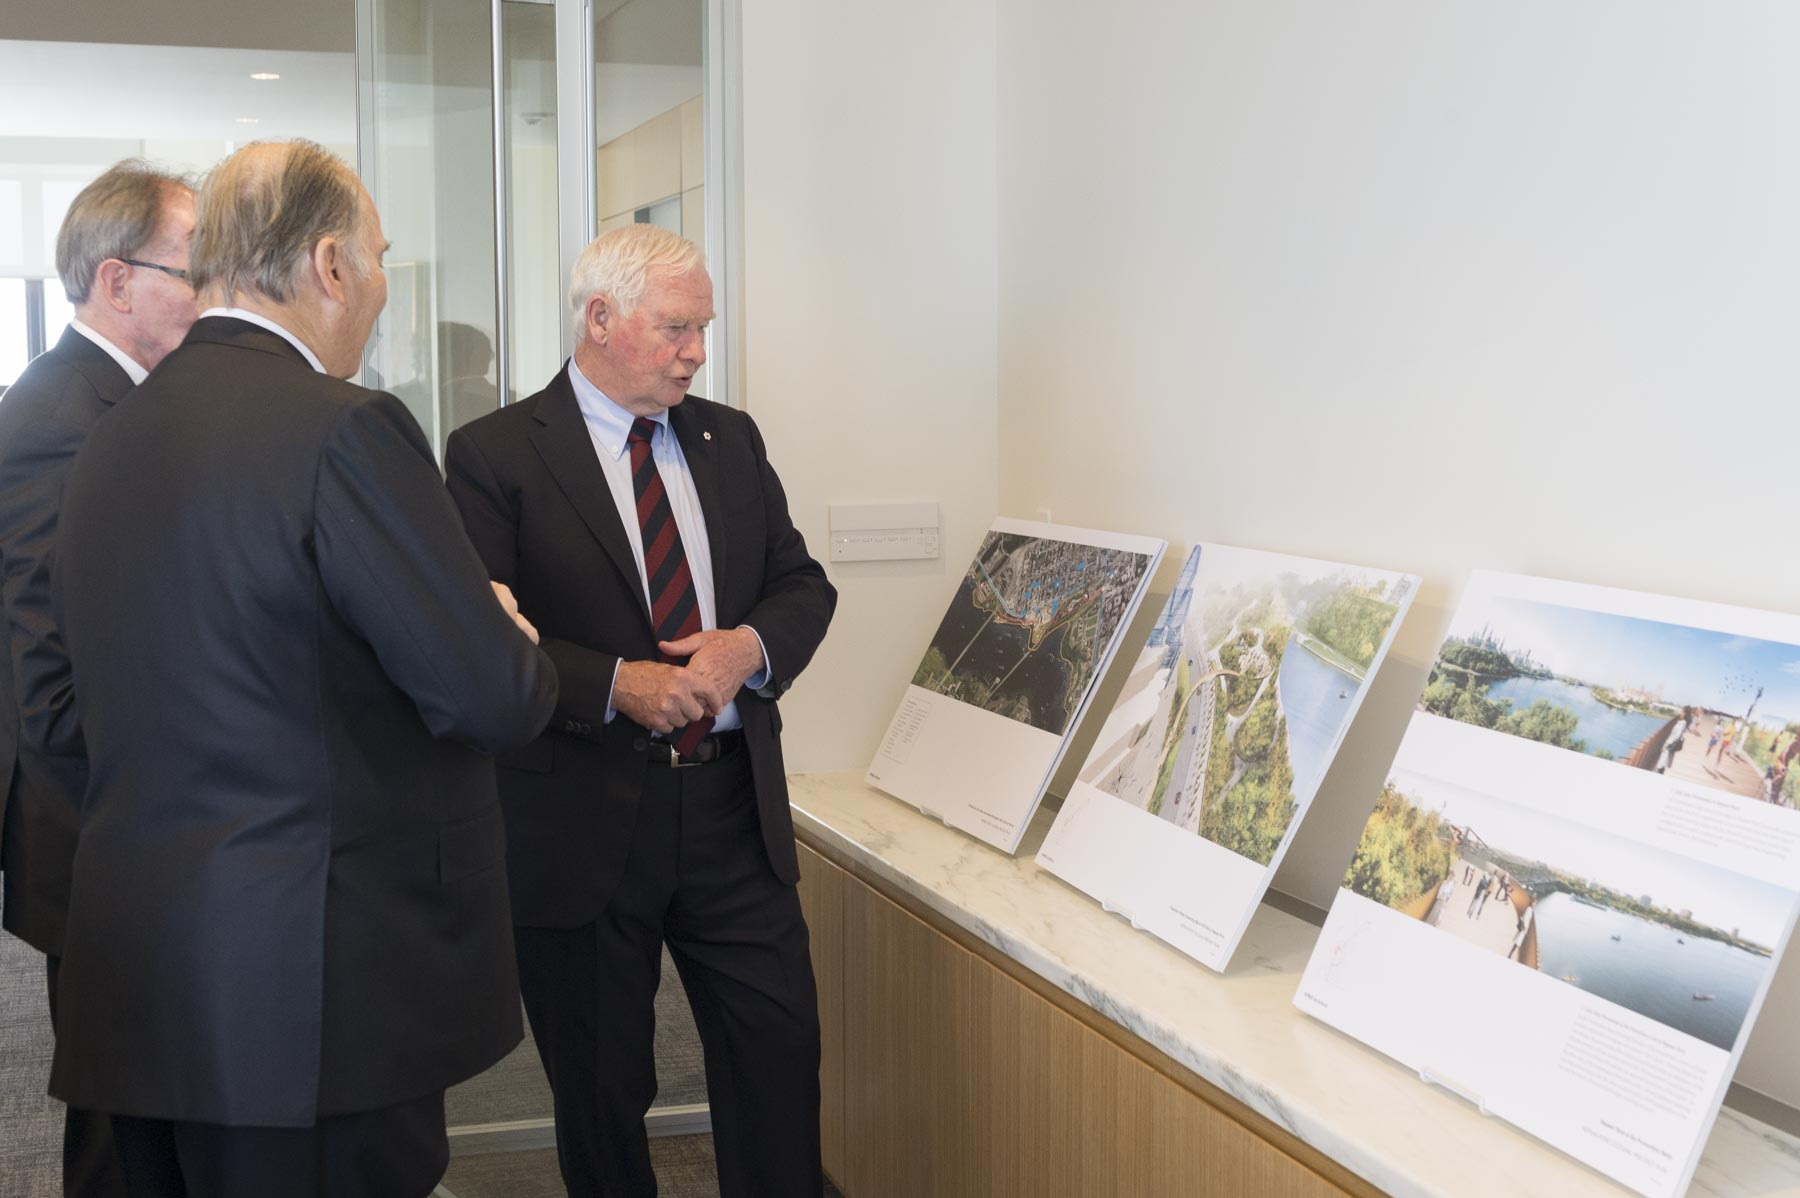 Upon his arrival at the new International Headquarters for the Global Centre for Pluralism, His Excellency toured the building with His Highness the Aga Khan.